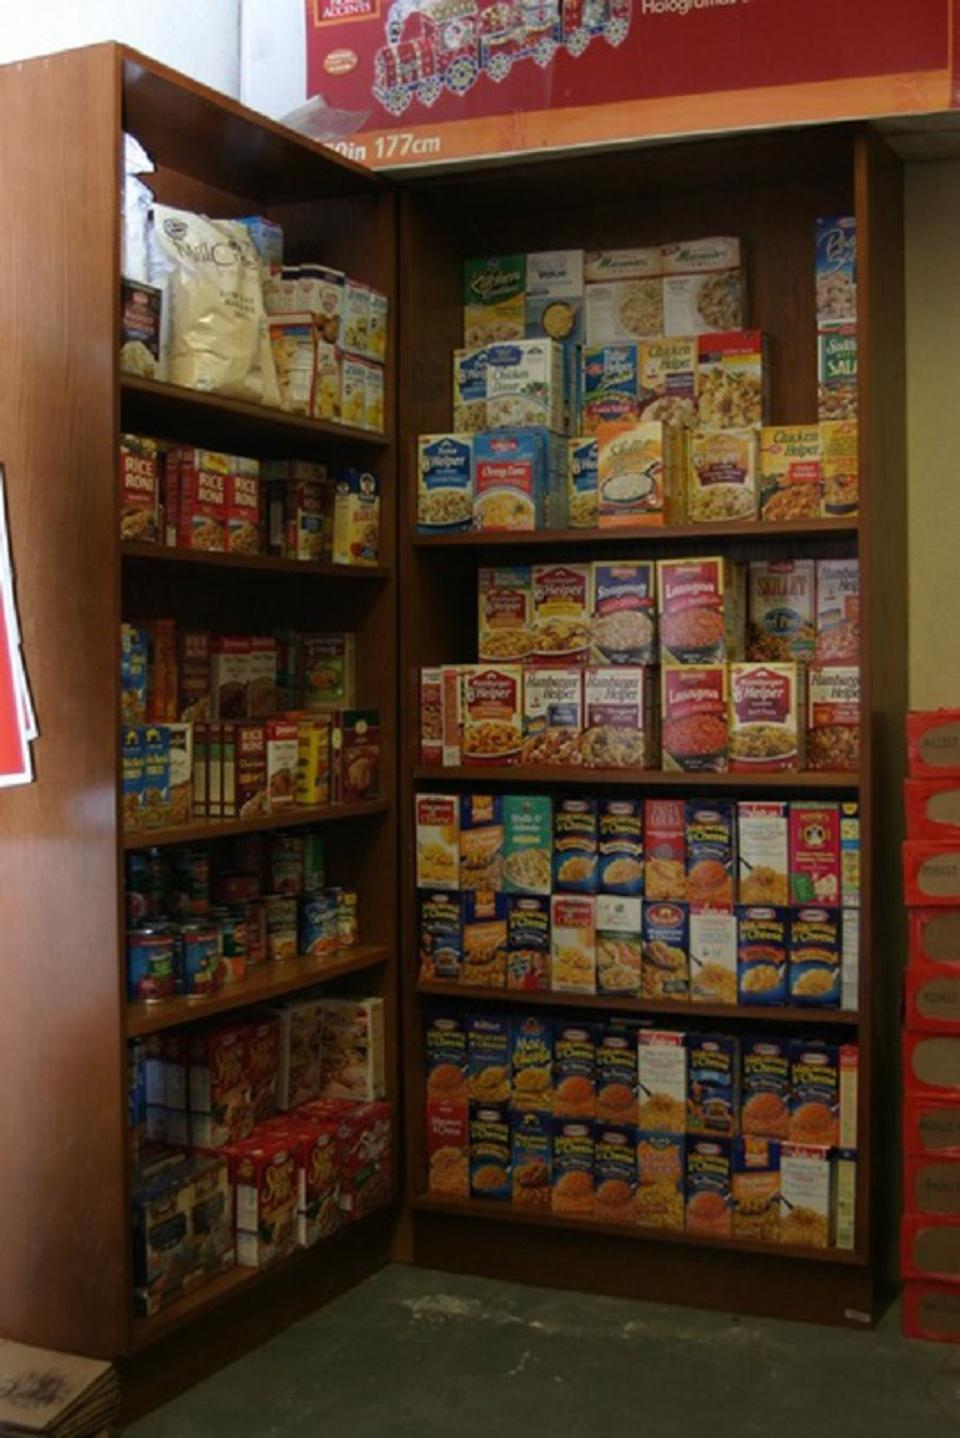 Administrative staff, teaching faculty, and Robles's classmates offered their support throughout the process leading up to the opening of the food pantry. College administration officials also designated a space on campus with several shelves for the